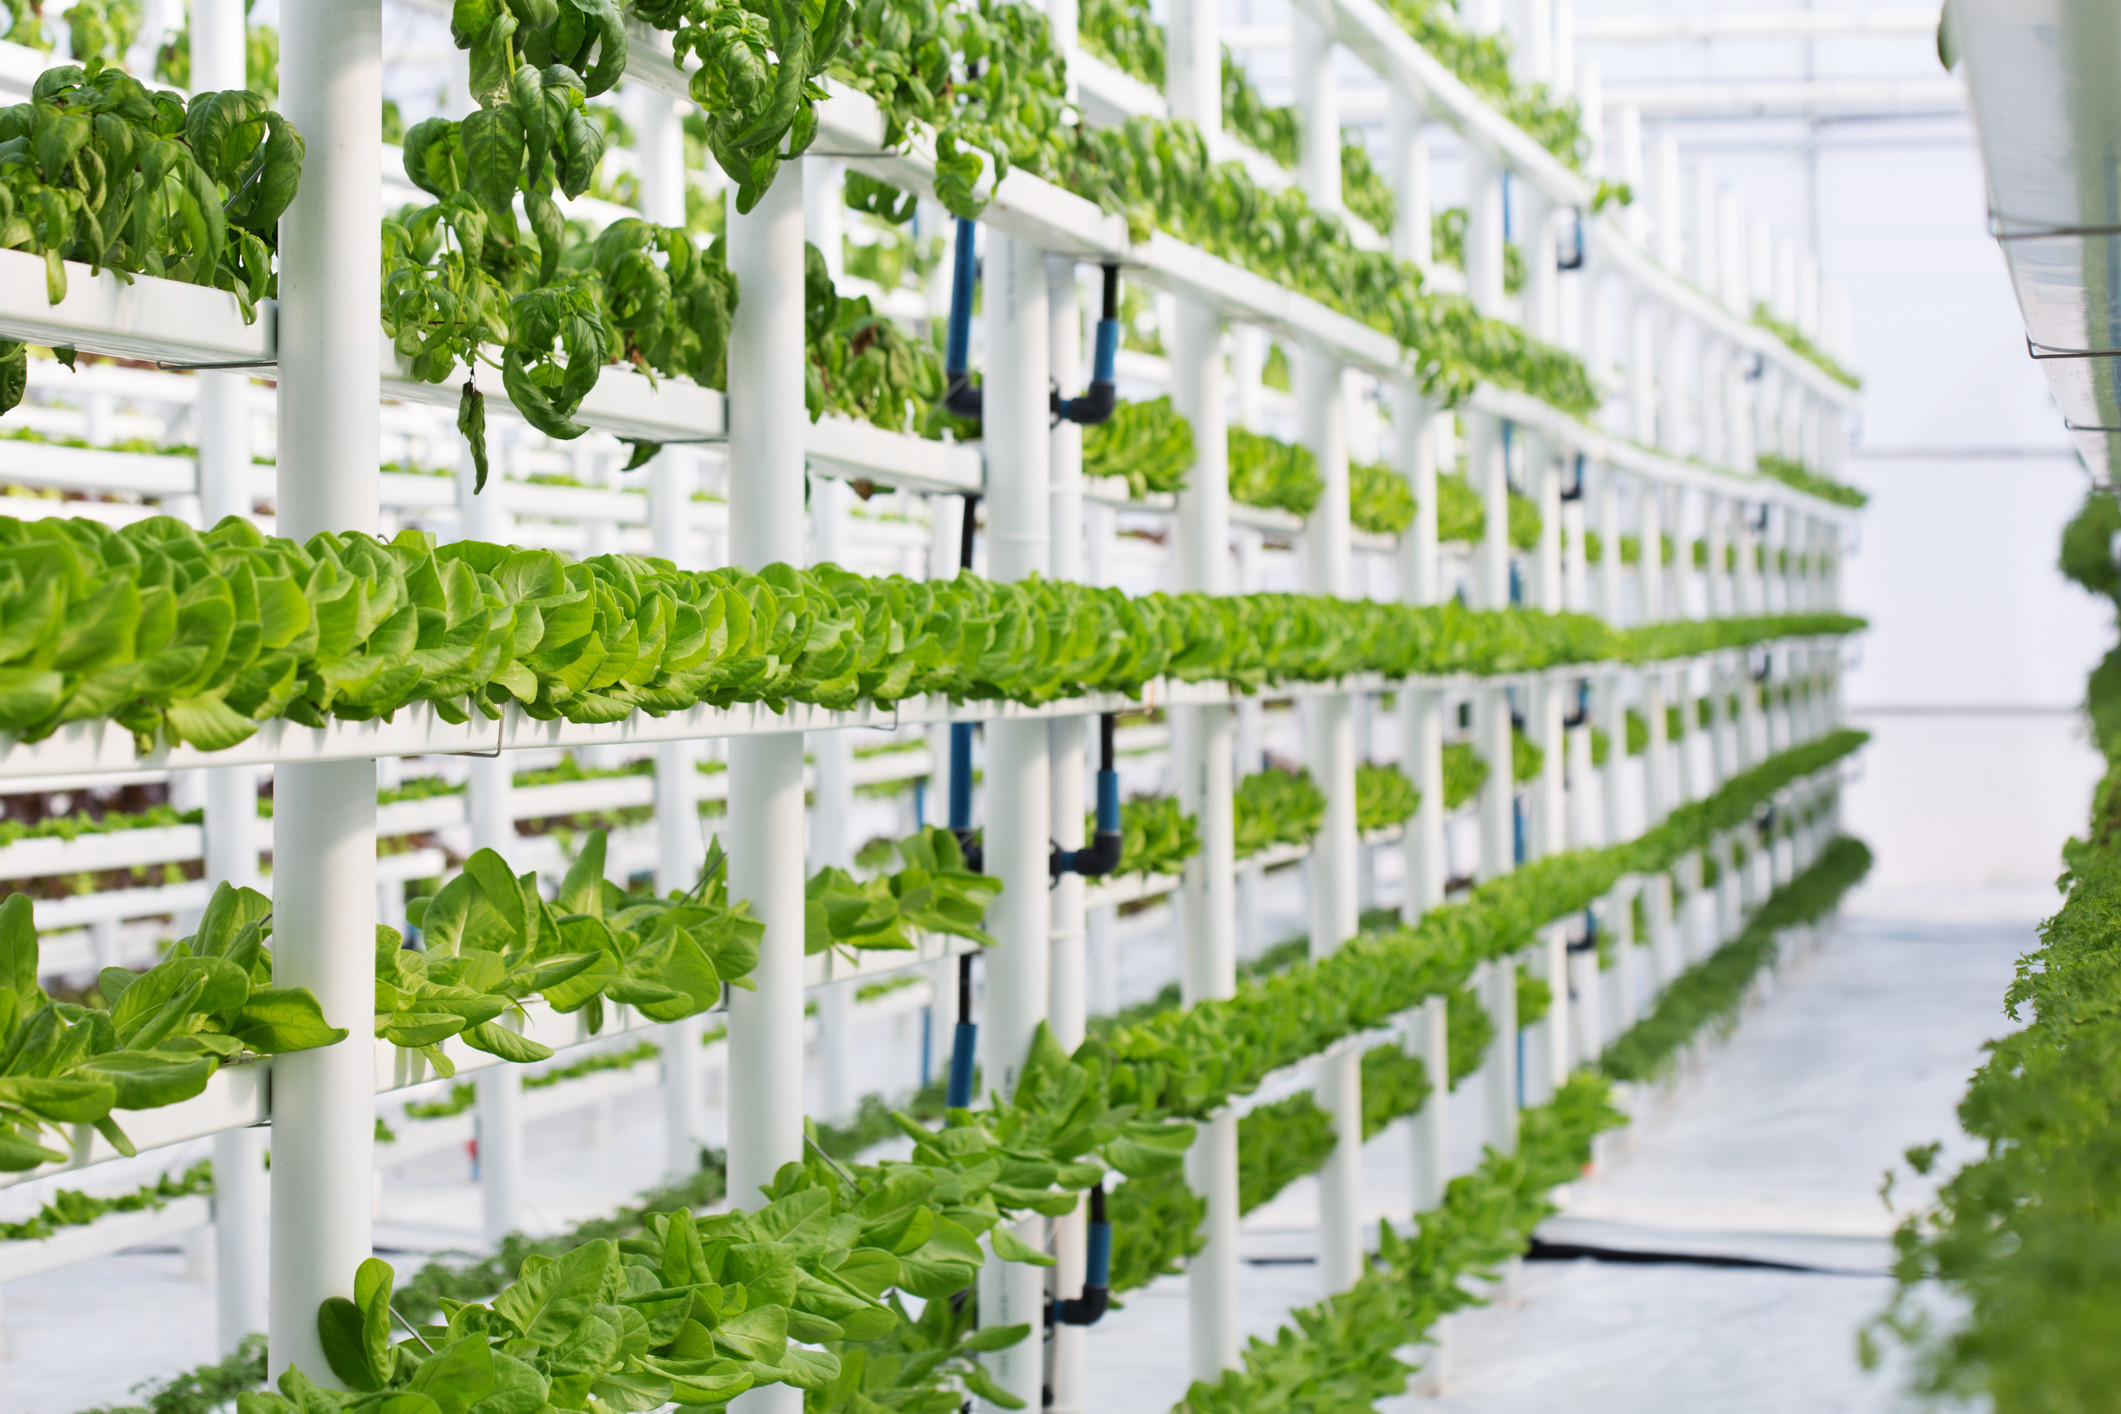 Best ideas about Vertical Hydroponic Garden . Save or Pin Vertical Gardens in a Greenhouse Garden & Greenhouse Now.